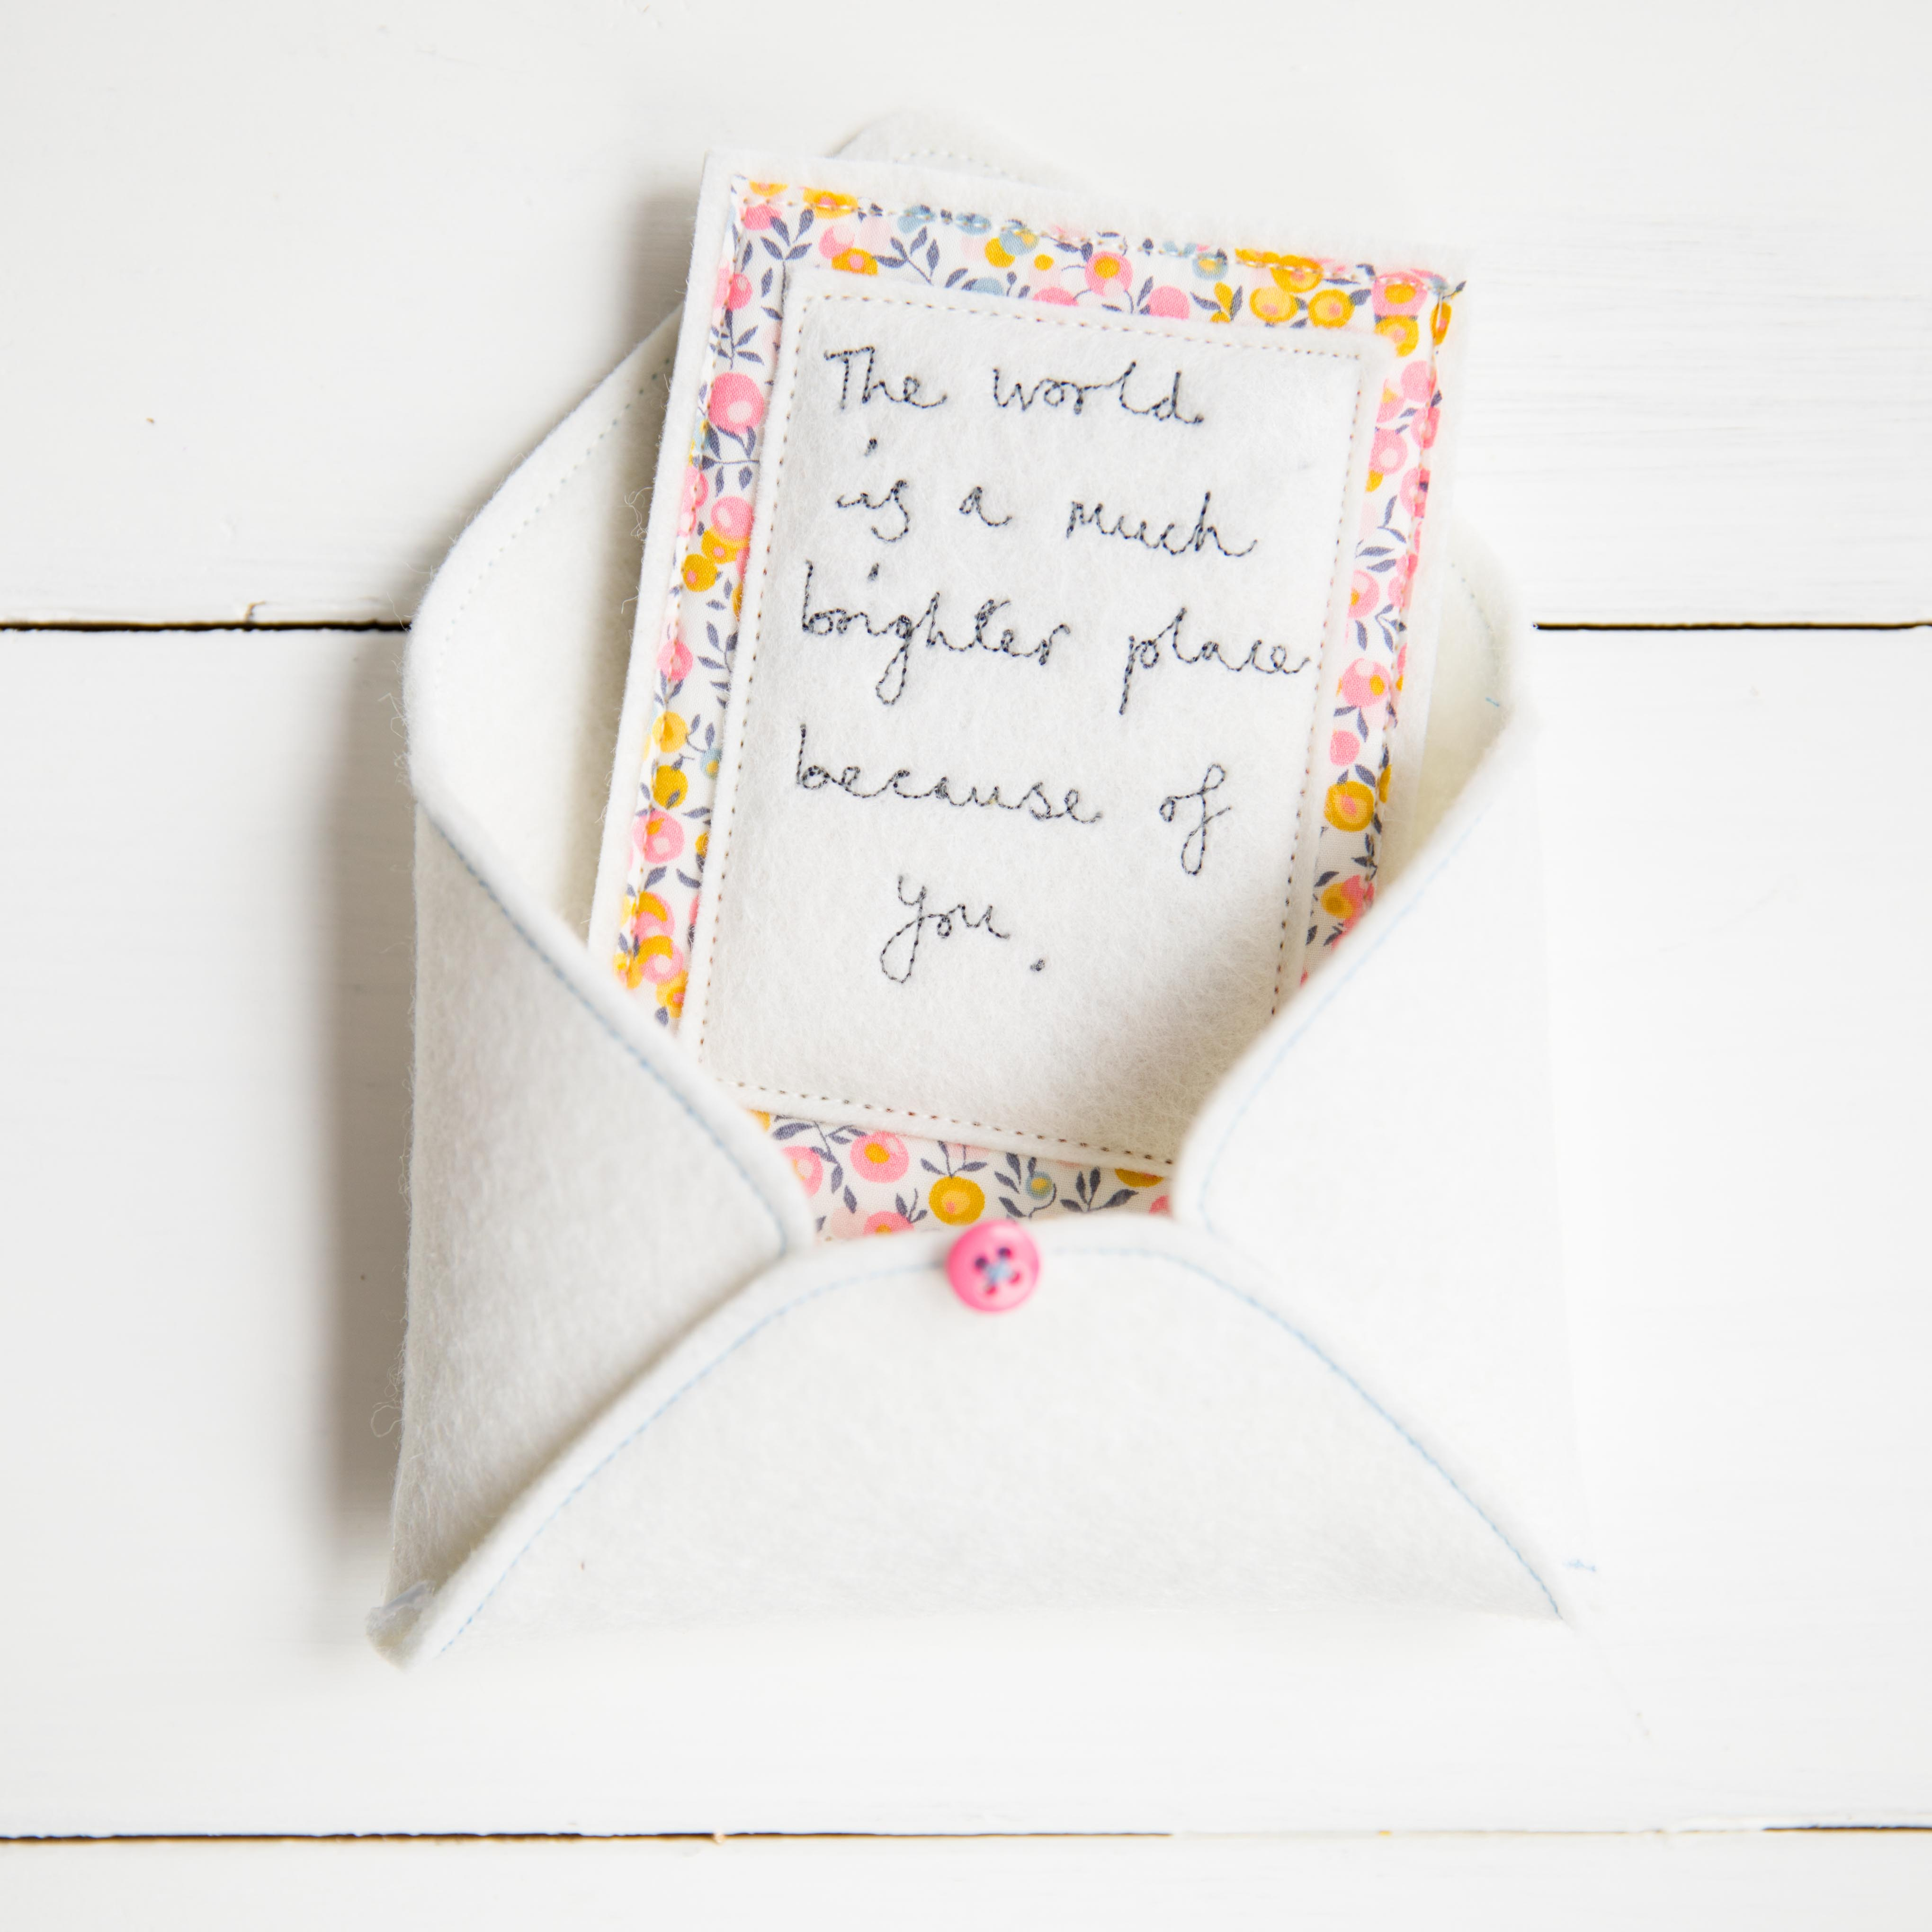 Hand stitched notes